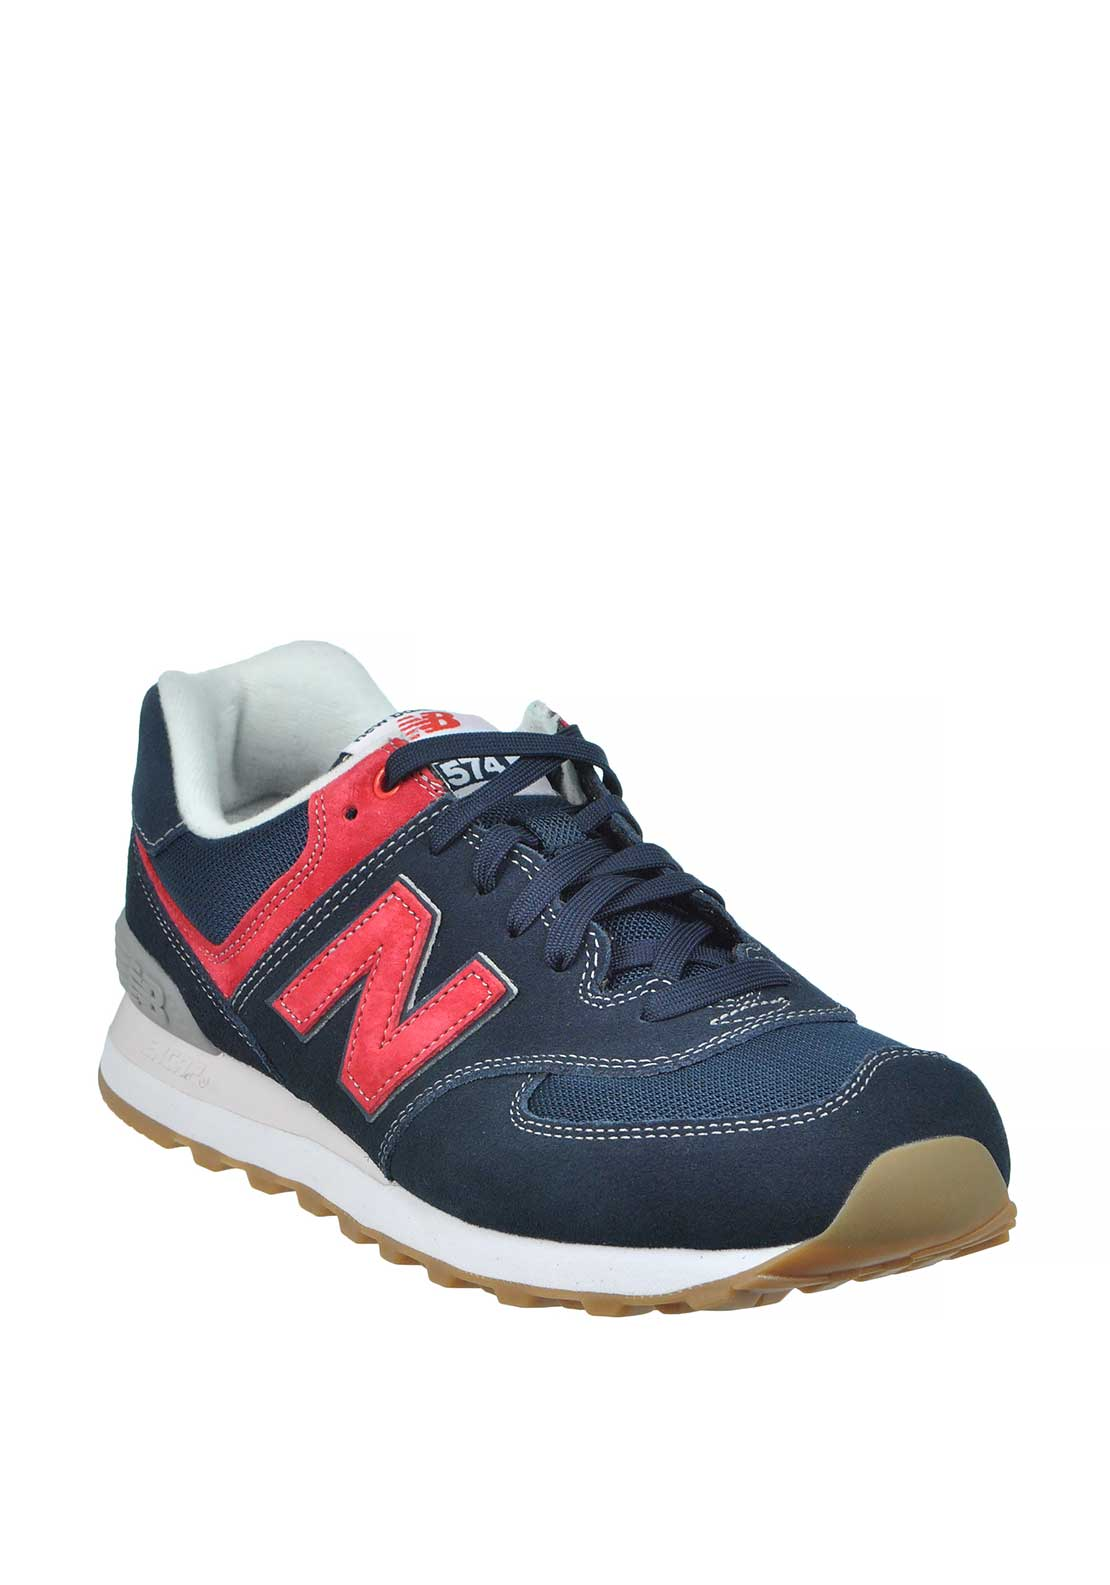 New Balance Mens 574 Fashion Runners, Navy & Red